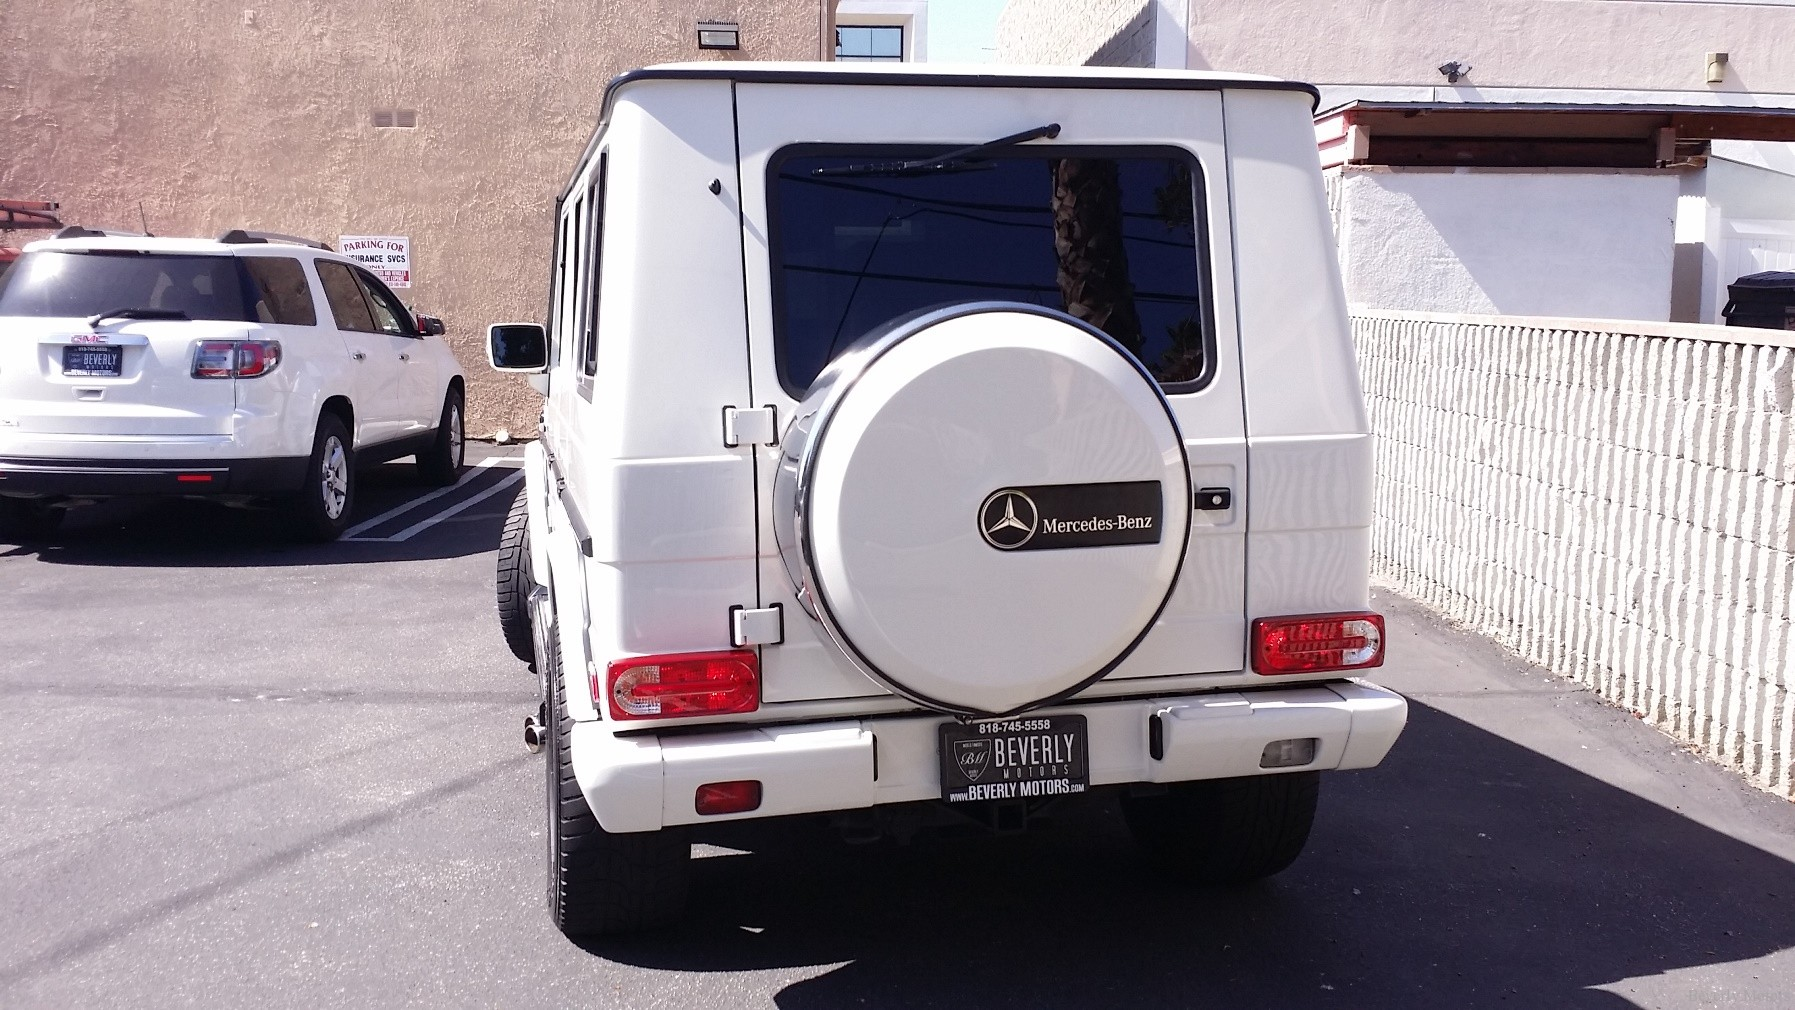 2002 mercedes benz g500 white on black for sale beverly for 2002 mercedes benz g500